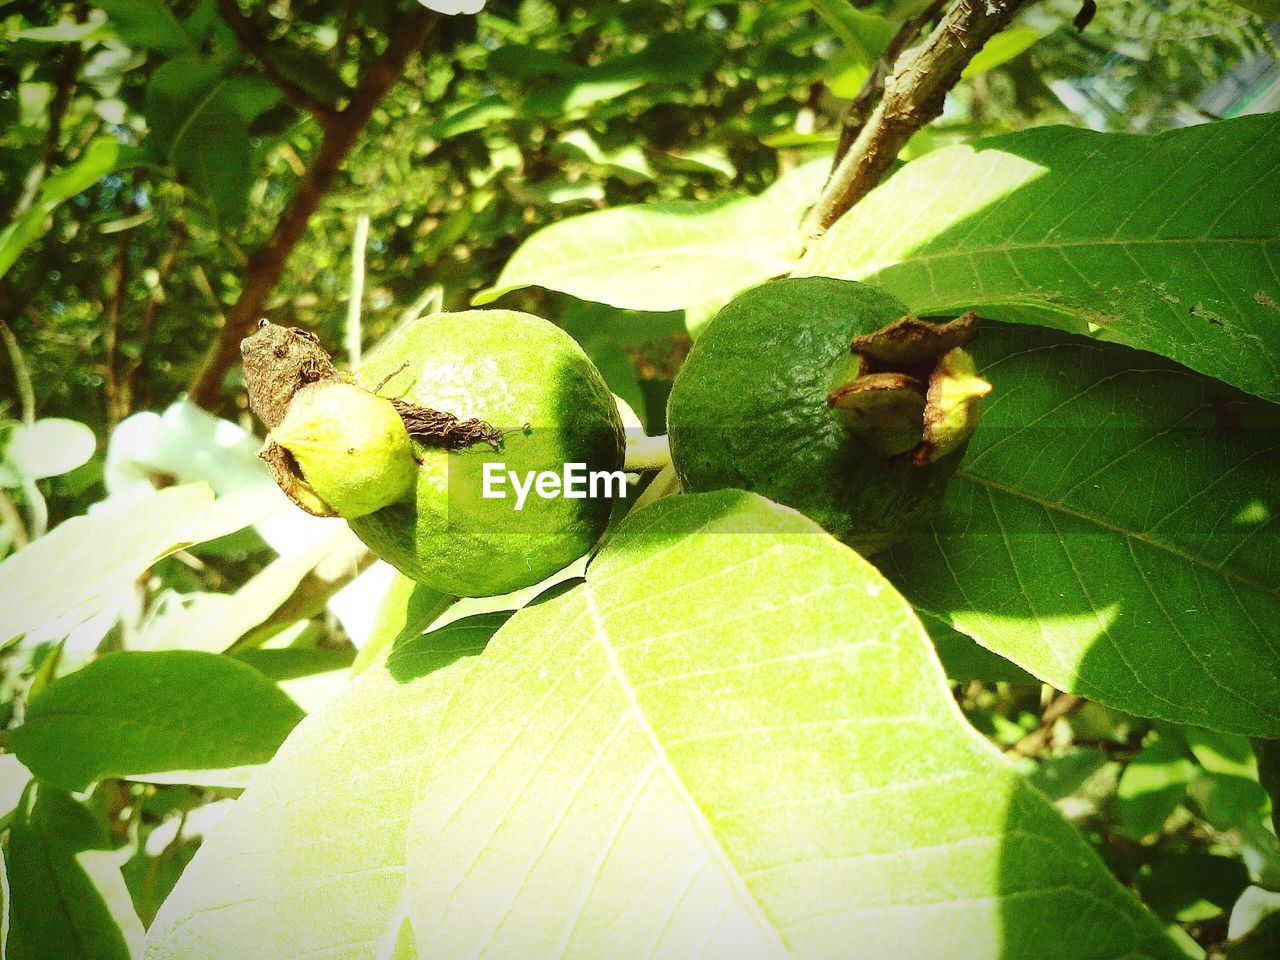 leaf, green color, growth, nature, day, food and drink, outdoors, no people, plant, close-up, fruit, freshness, beauty in nature, food